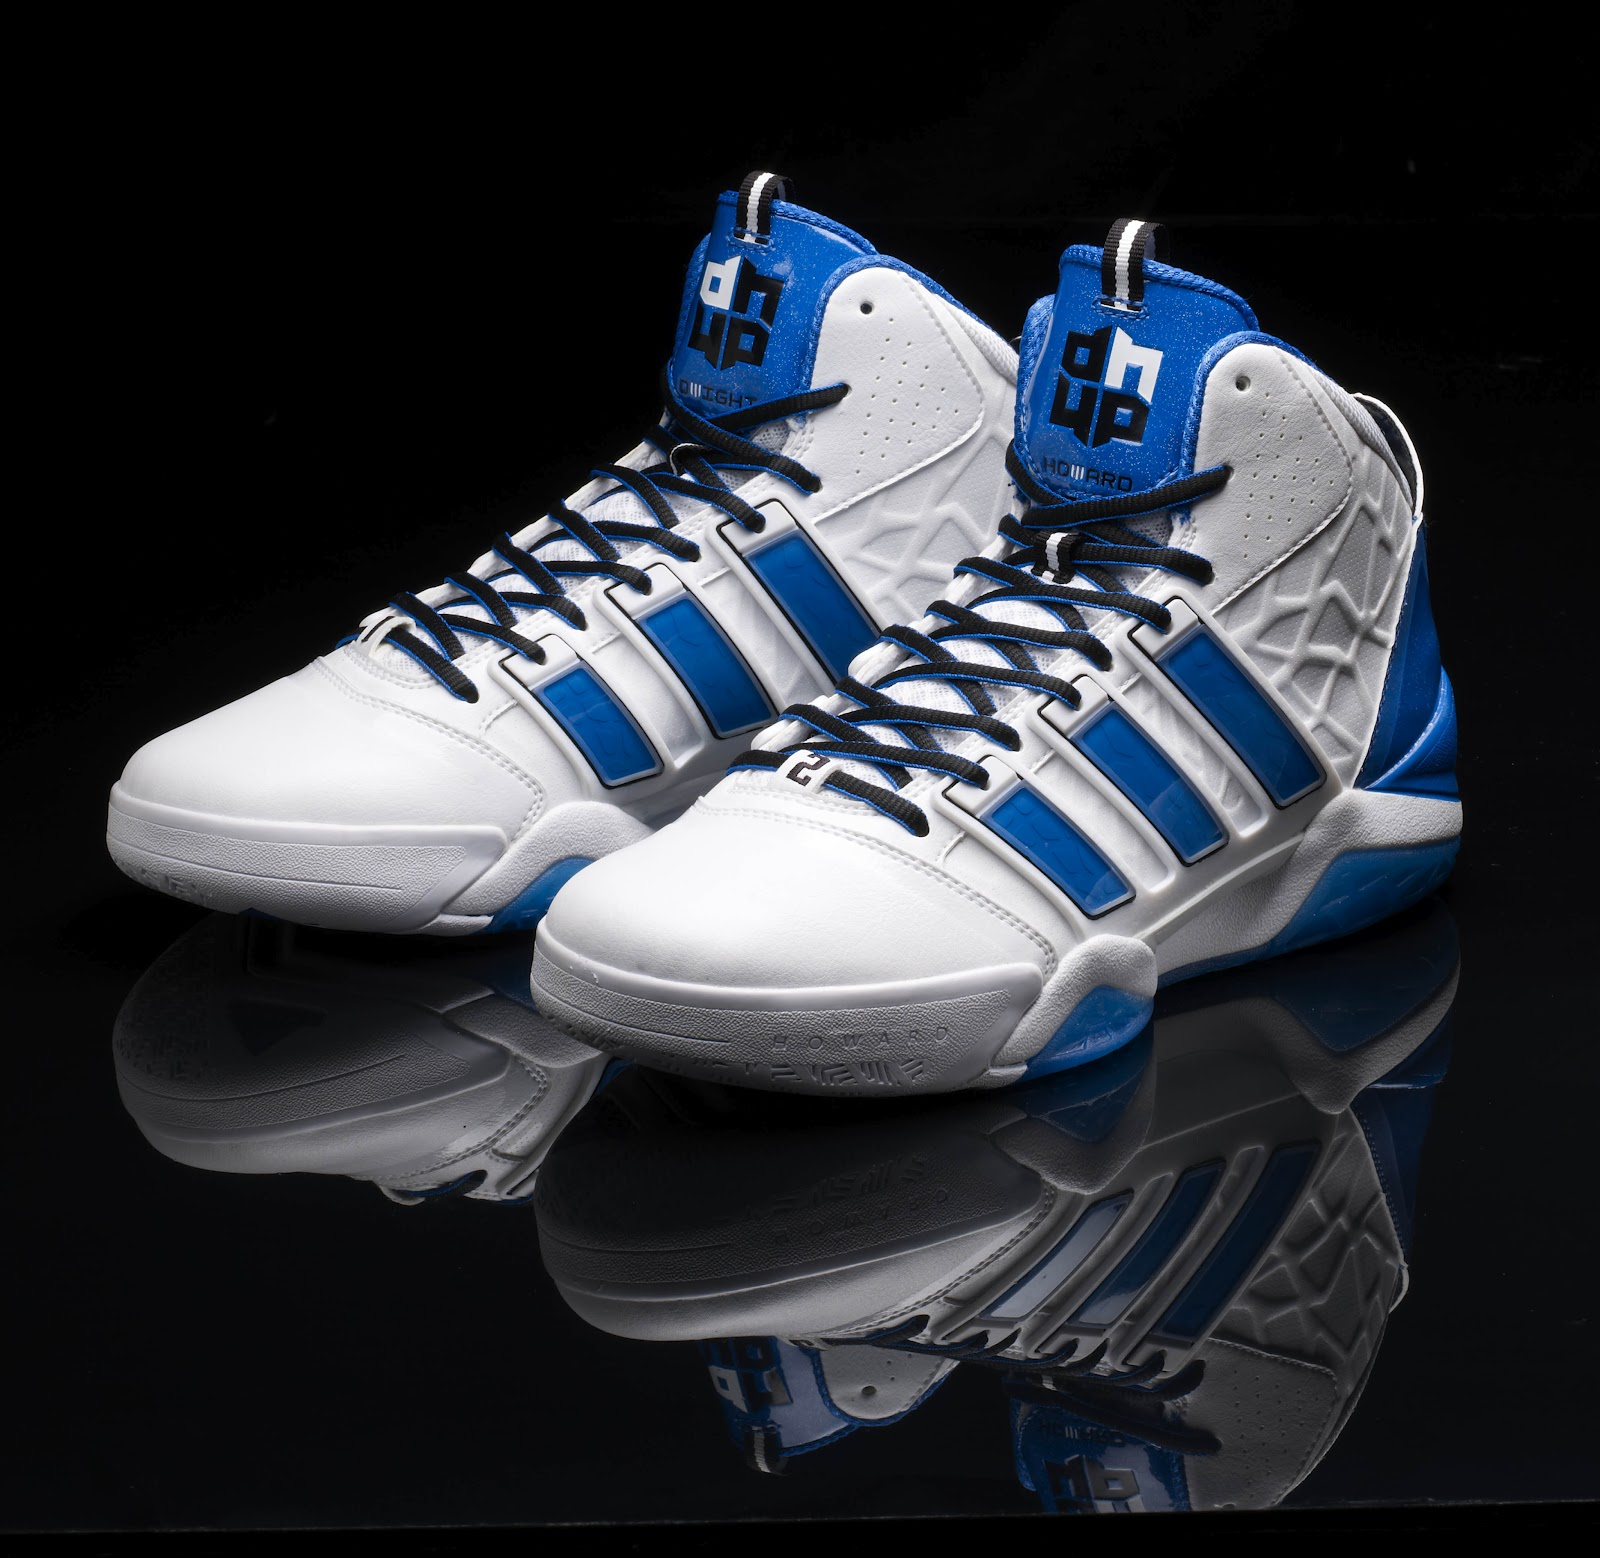 Dwight Howard Adidas Shoes